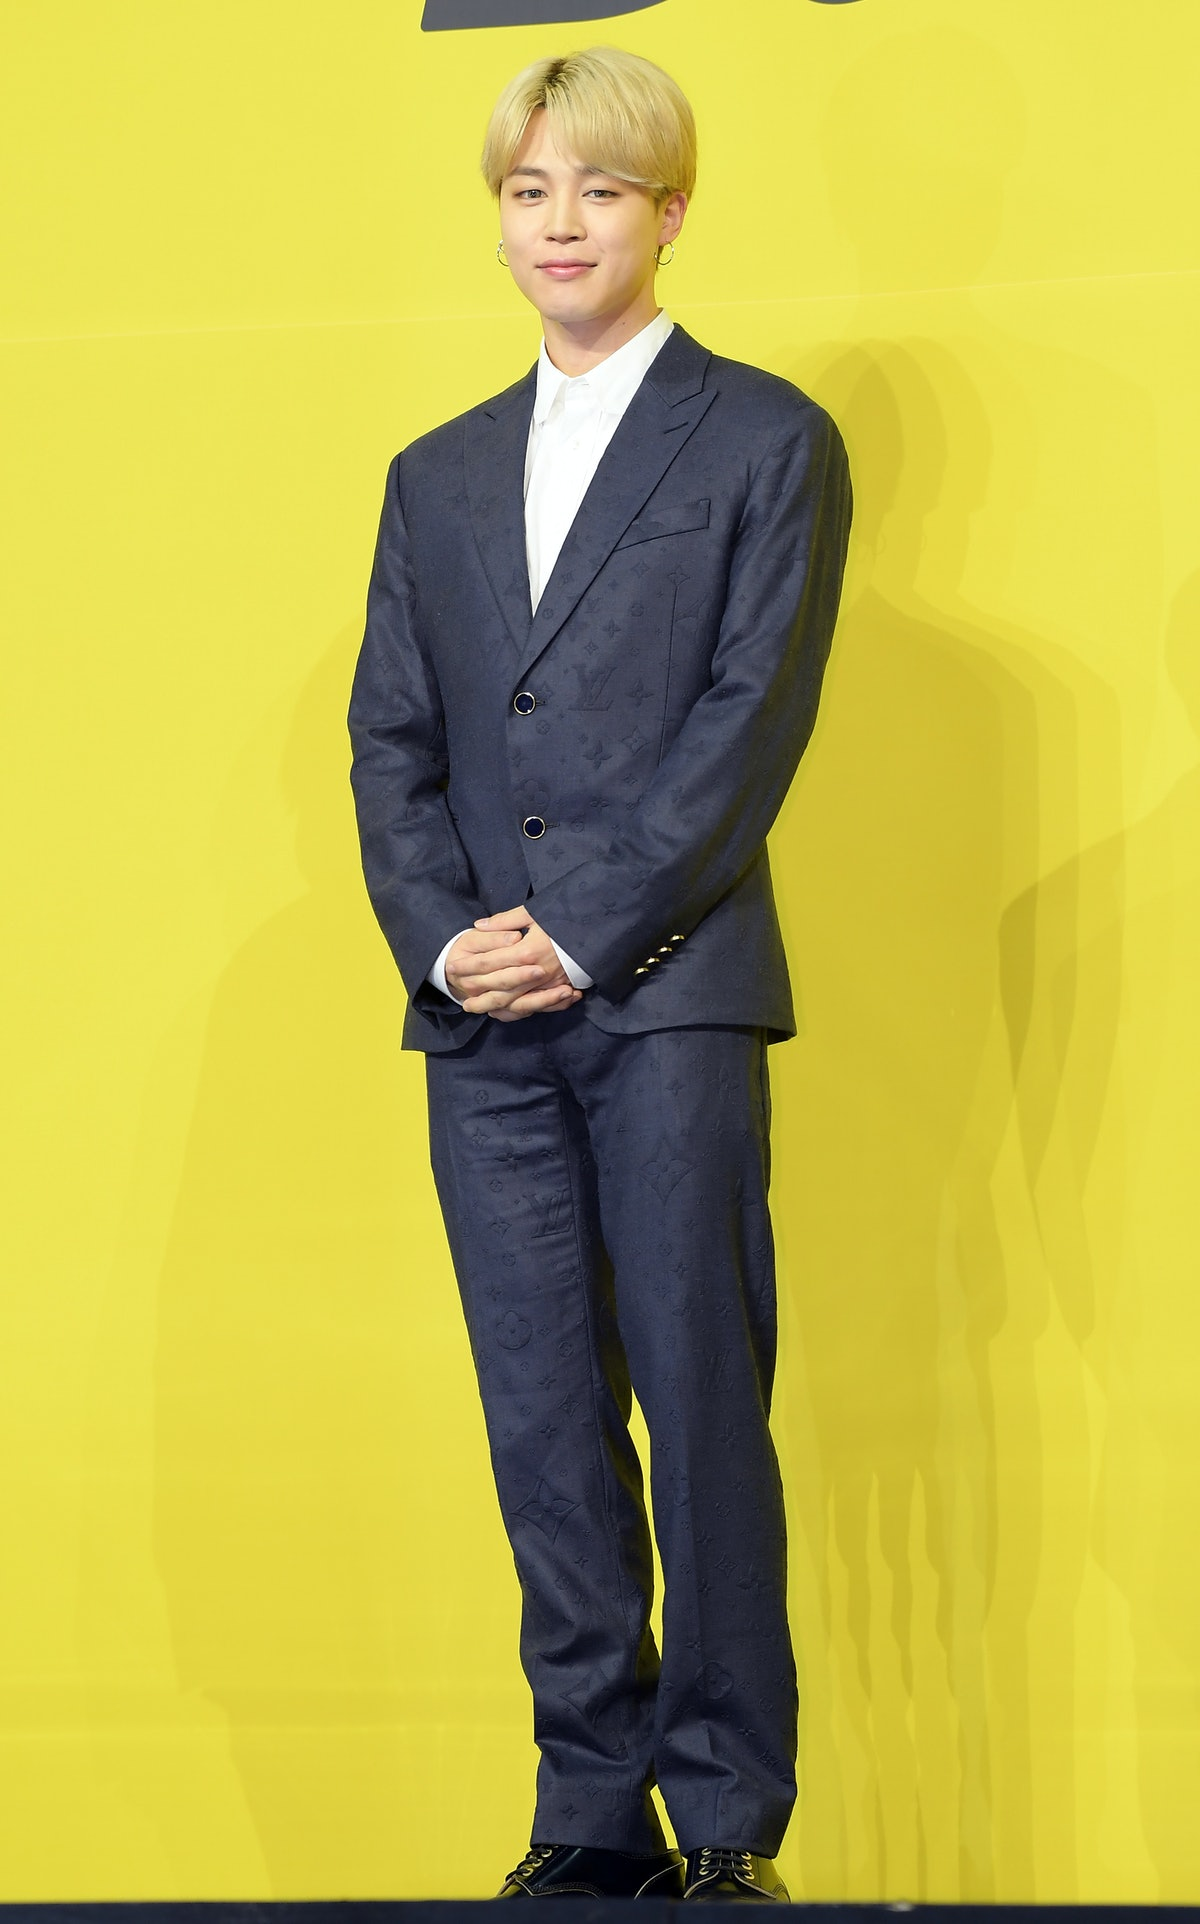 SEOUL, SOUTH KOREA - MAY 21: Jimin of BTS attends a press conference for BTS's new digital single 'B...